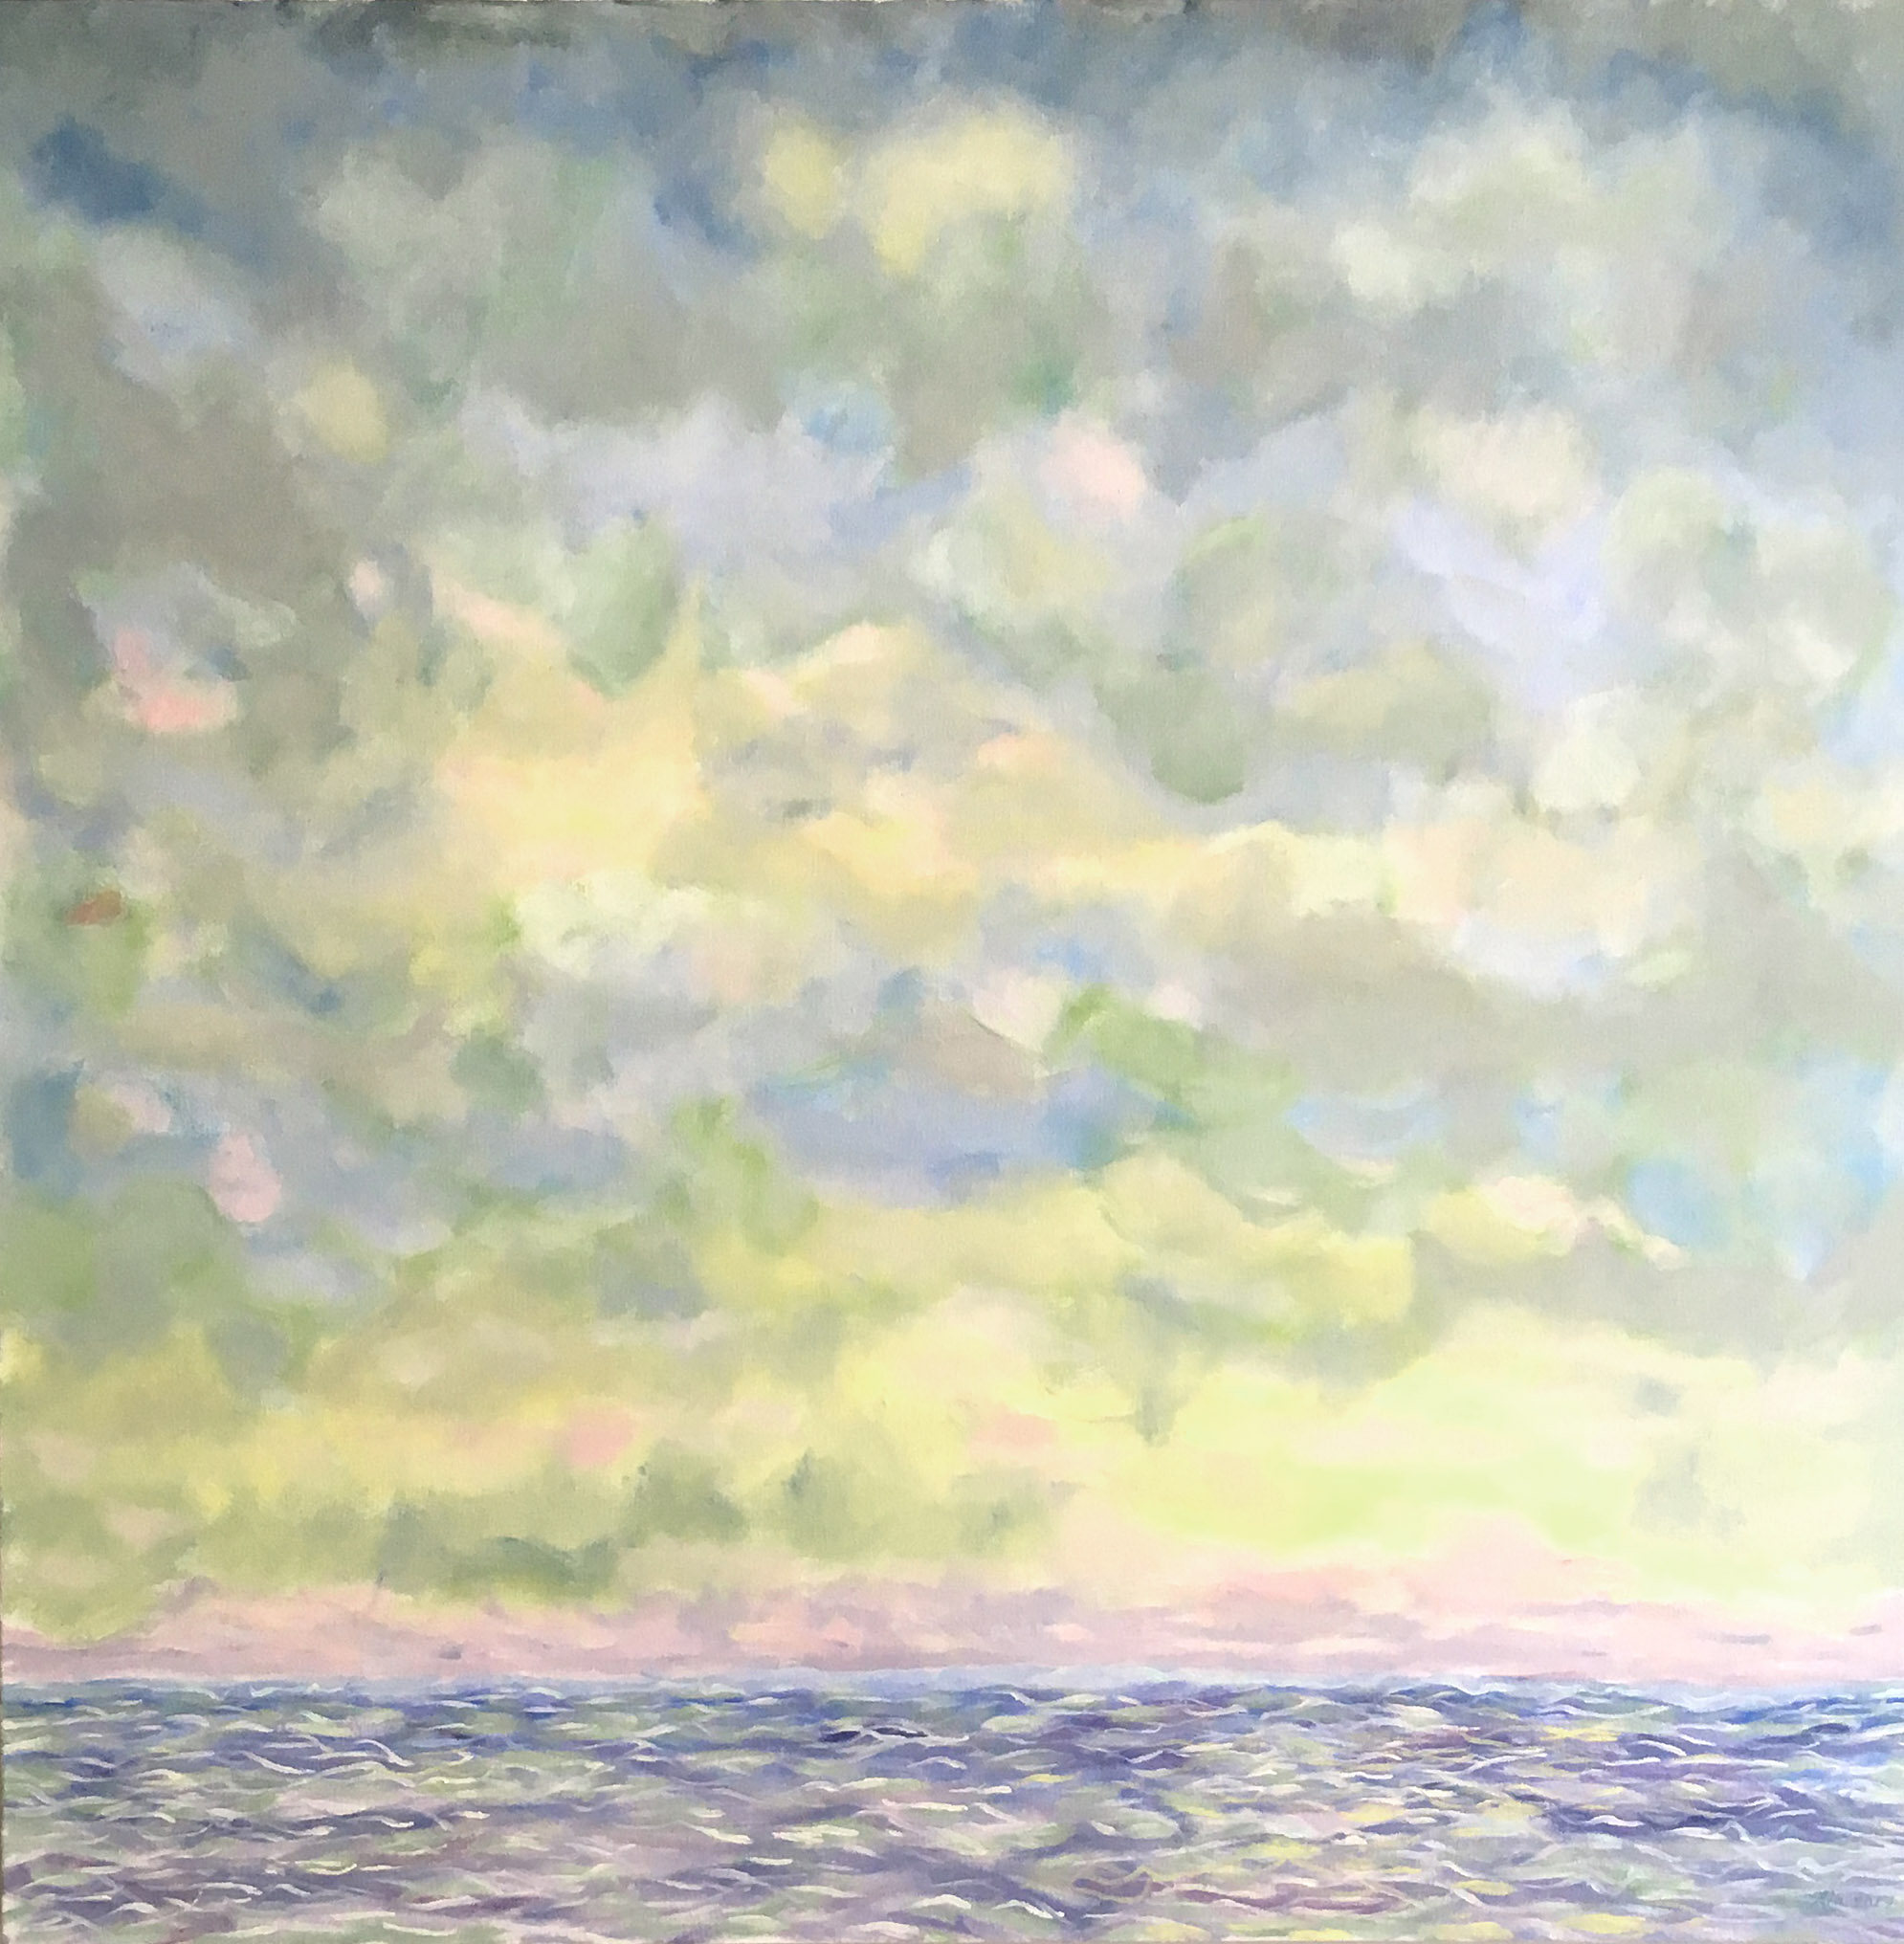 "La Lumière qui Brille, oil on canvas, 36"" x 36"" $2,100 Available to view at Sausalito location"